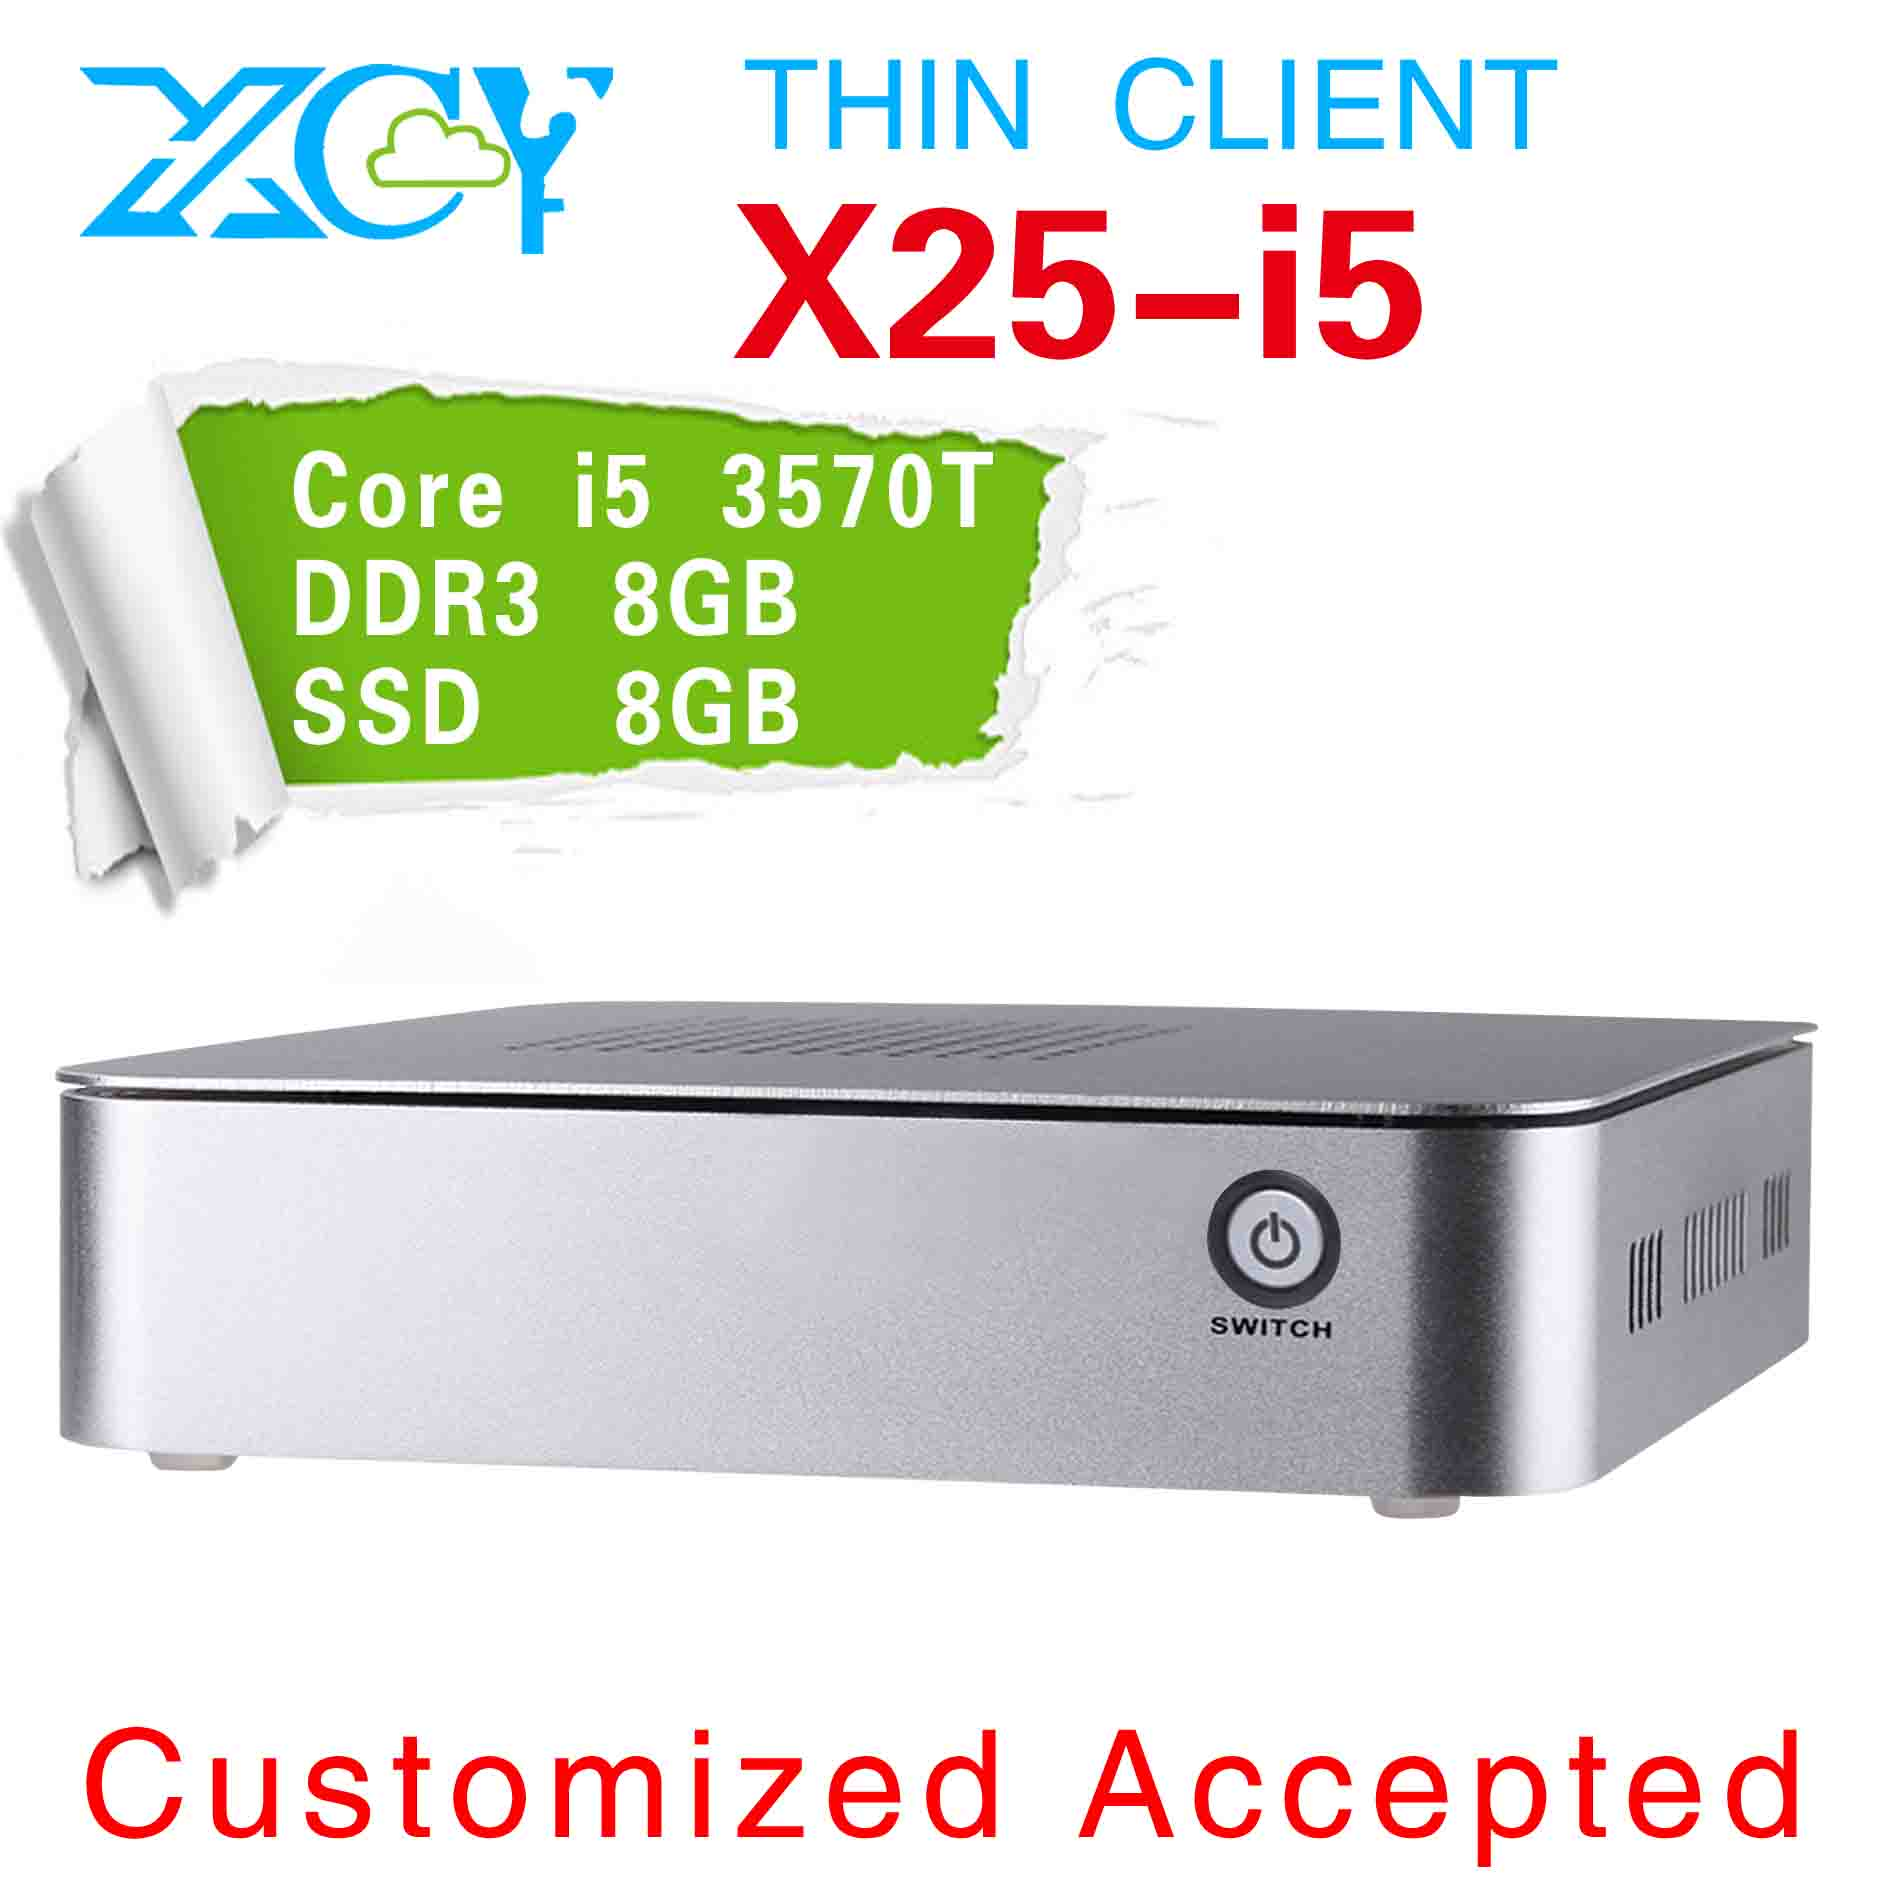 Smaller space and energy X25-i5 2390T Celeron Dual core itx aluminum pc micro atx htpc pc 8gb ram 8g ssd(China (Mainland))